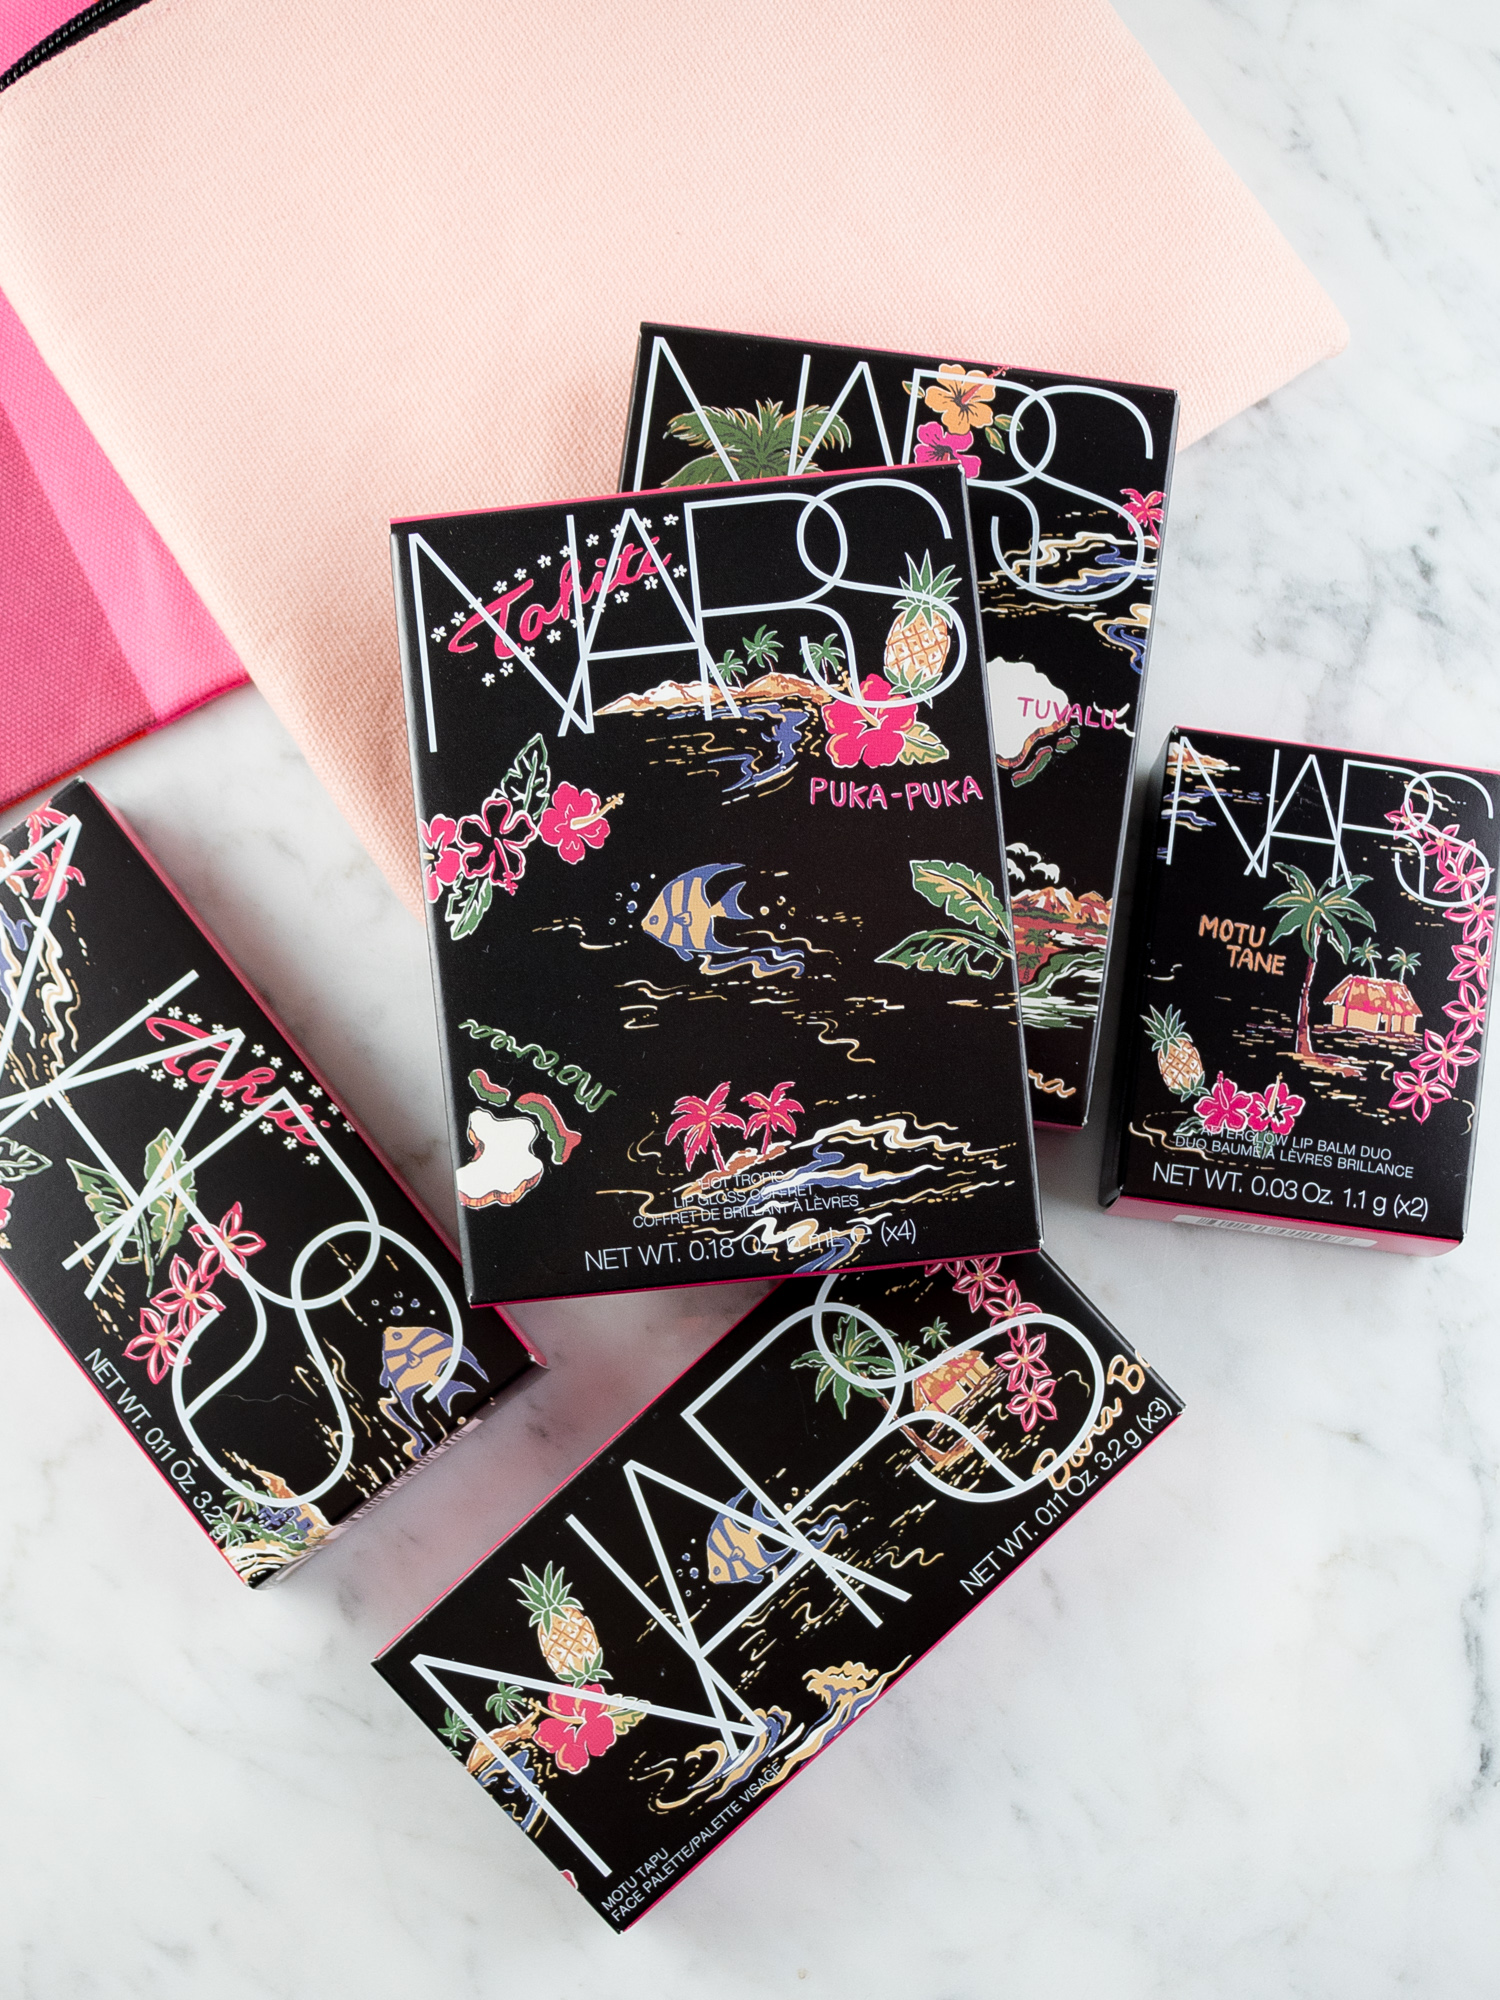 NARS Private Paradise Collection